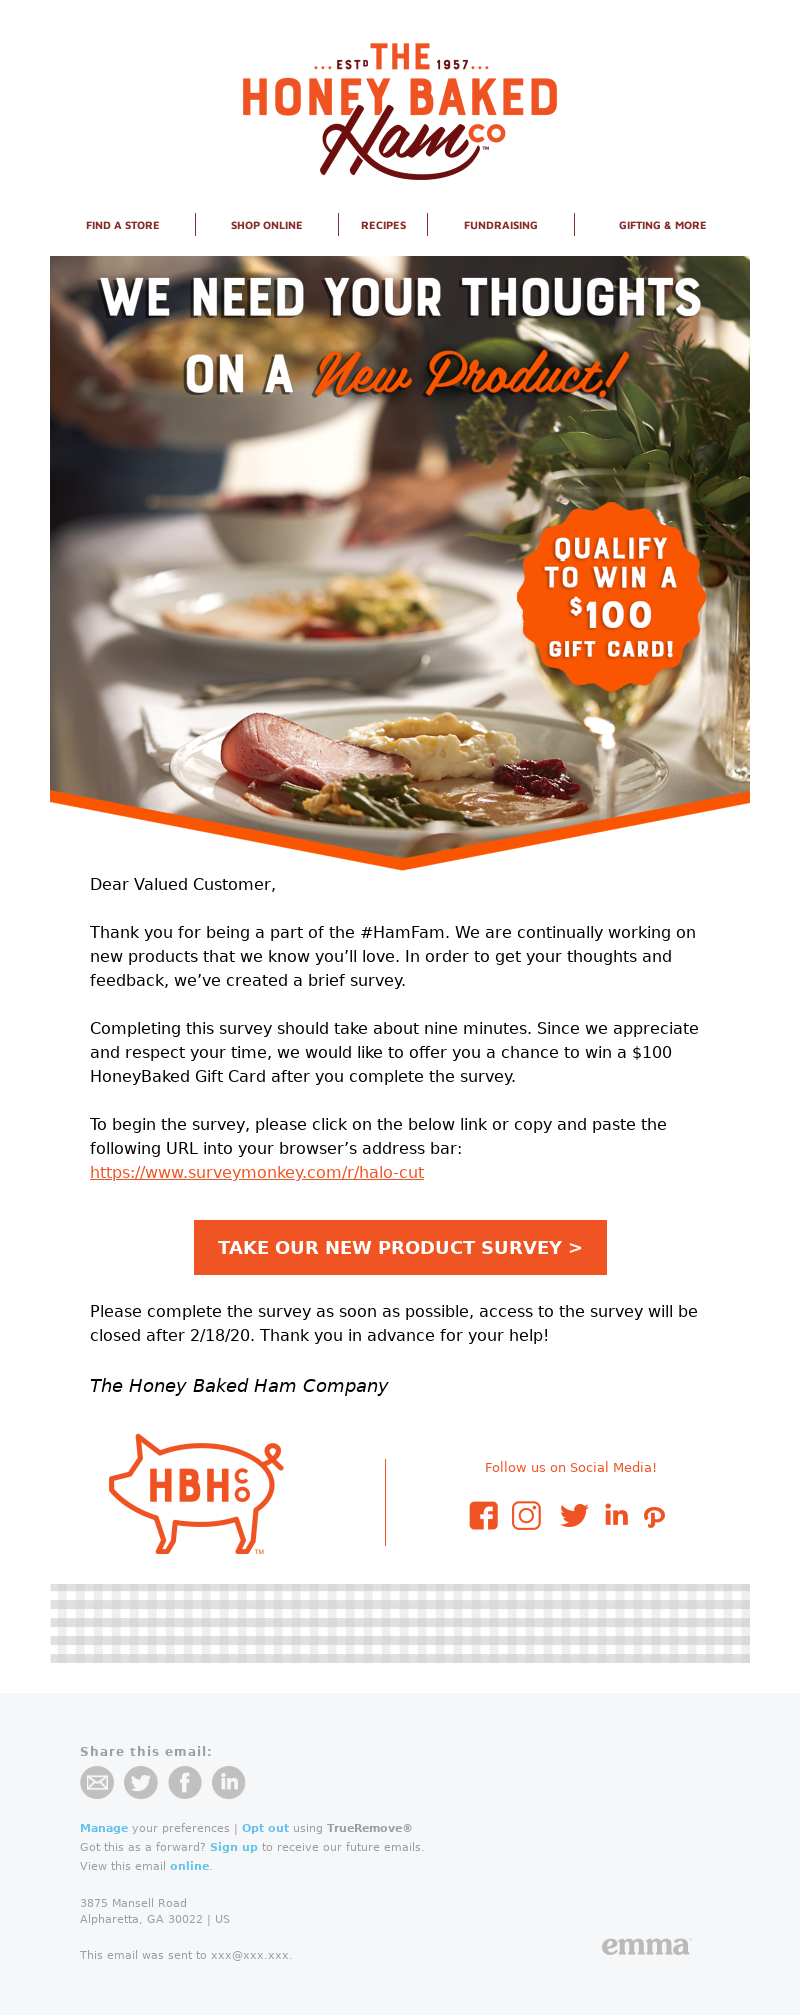 Take our survey and qualify to win a $100 Gift Card! The Honey Baked Ham Co